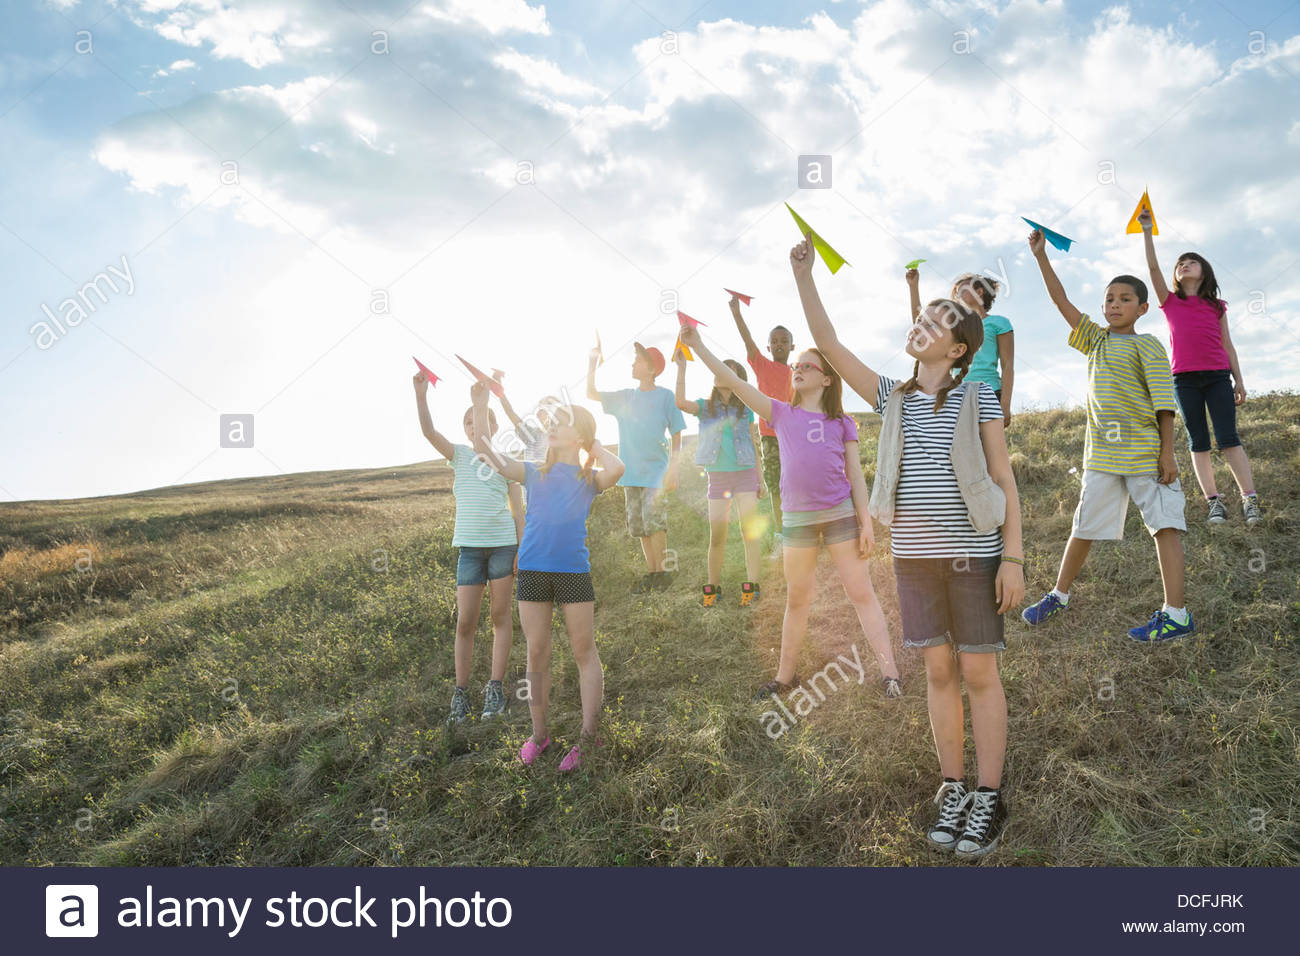 Group of kids gathered together holding paper airplanes - Stock Image